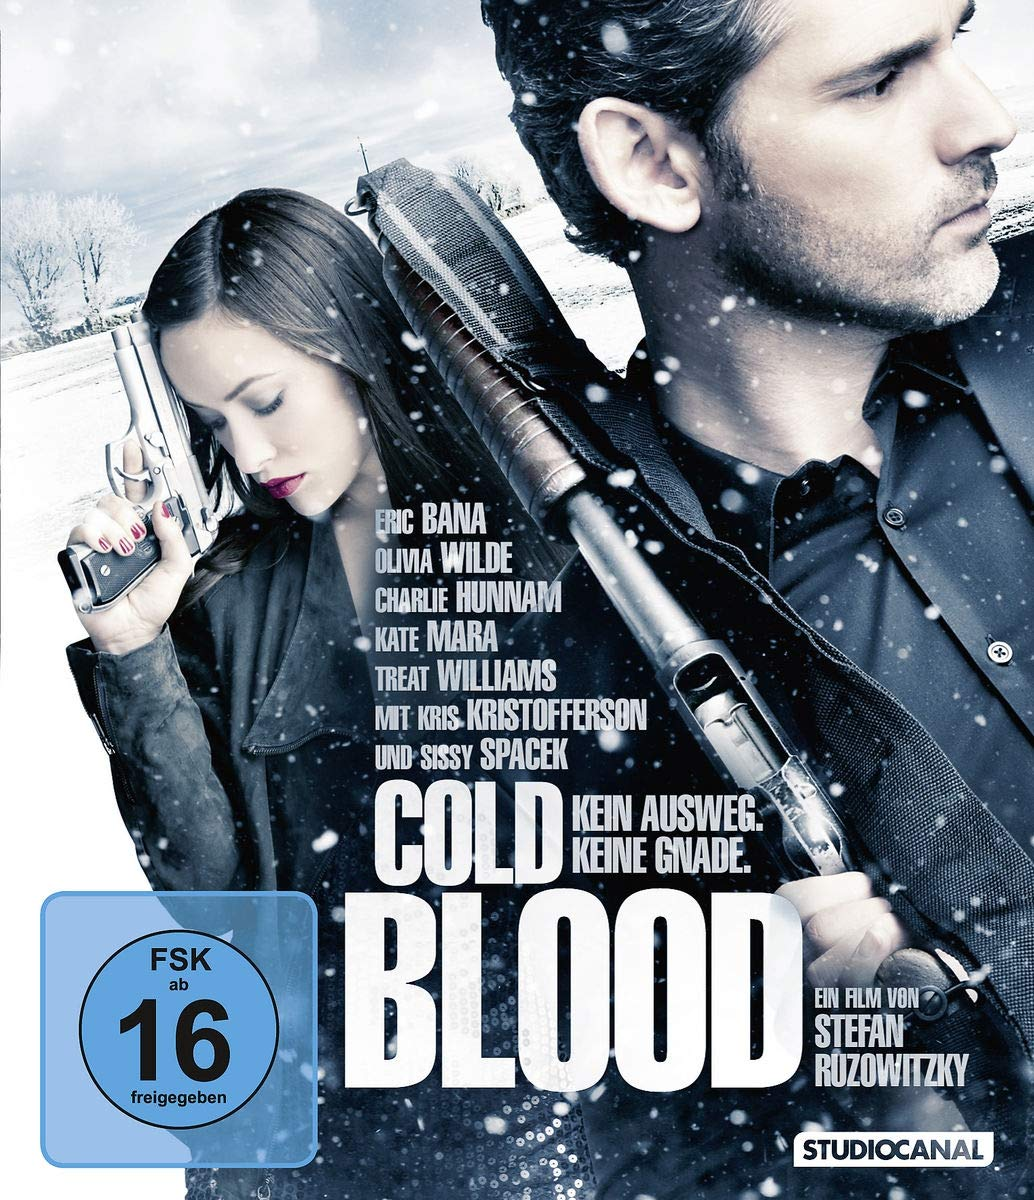 Amazon.com: Cold Blood - Kein Ausweg, keine Gnade: Movies & TV